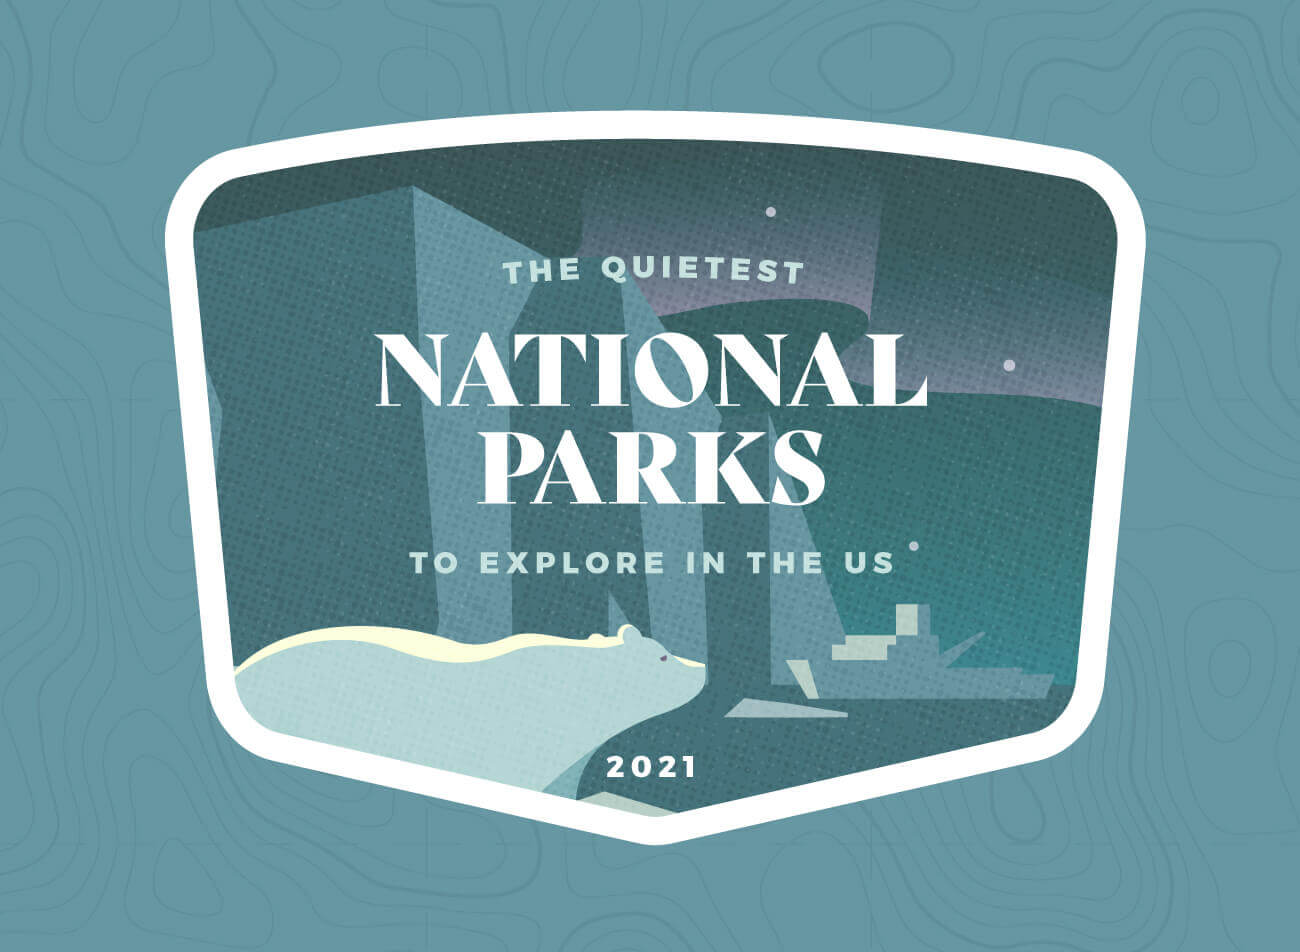 Header image for the quietest national parks in the US.